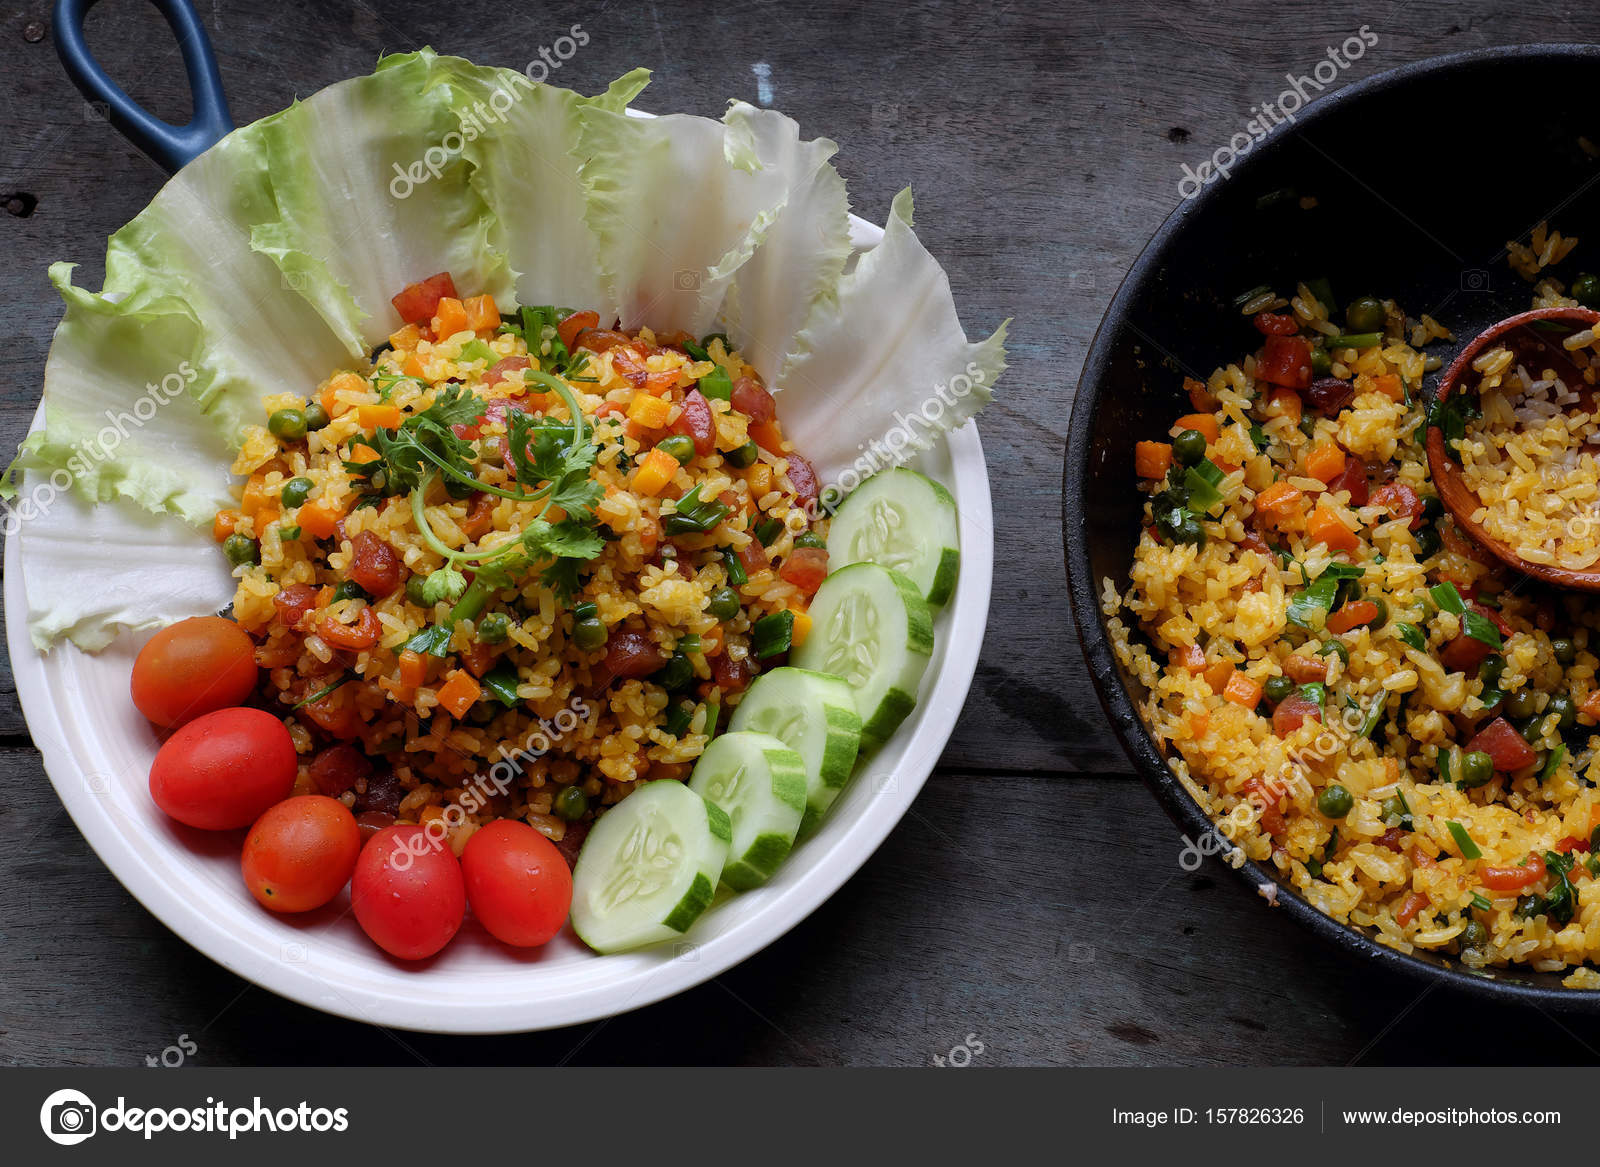 Vietnam food fried rice stock photo xuanhuongho 157826326 vietnam food fried rice make from rice egg sausage dried shrimp bean cucumber tomato carrot and scallion high view of dishl on wooden background ccuart Images